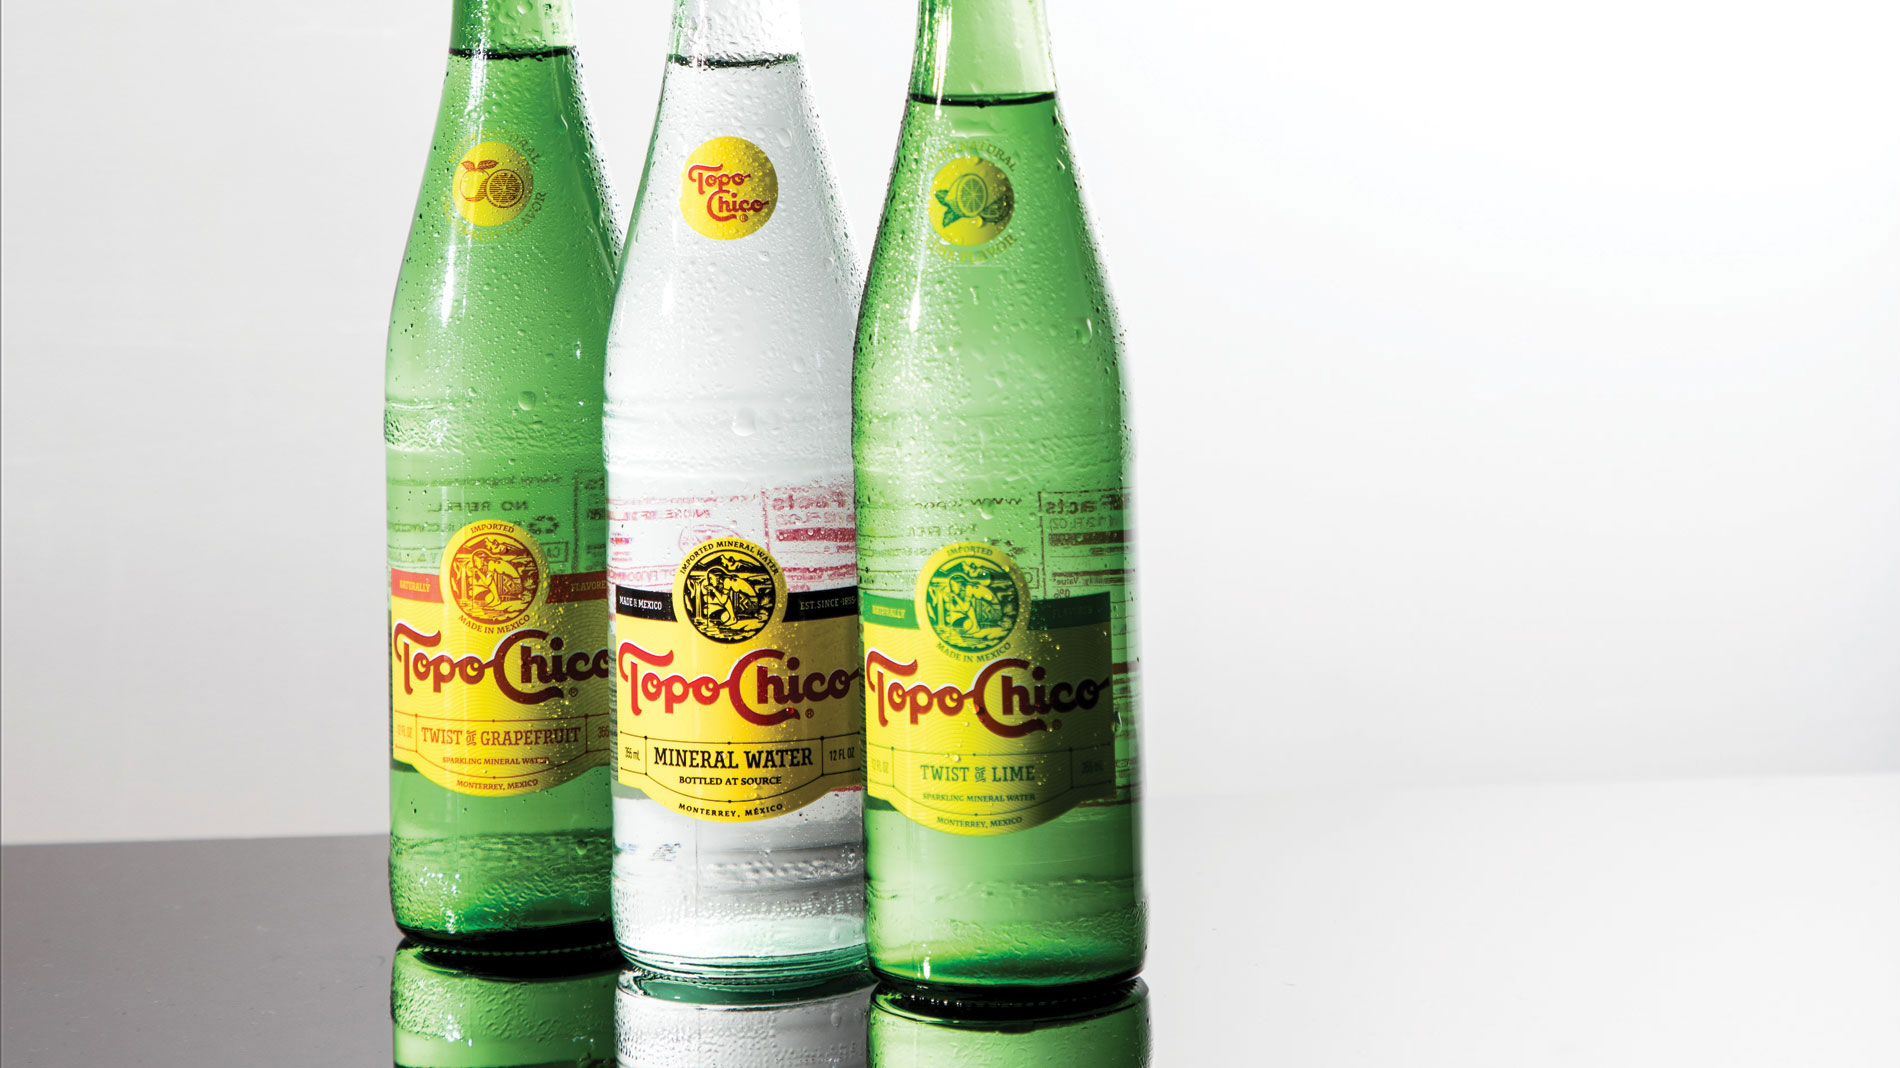 Topo Chico is on the top of our list for sparkling waters.